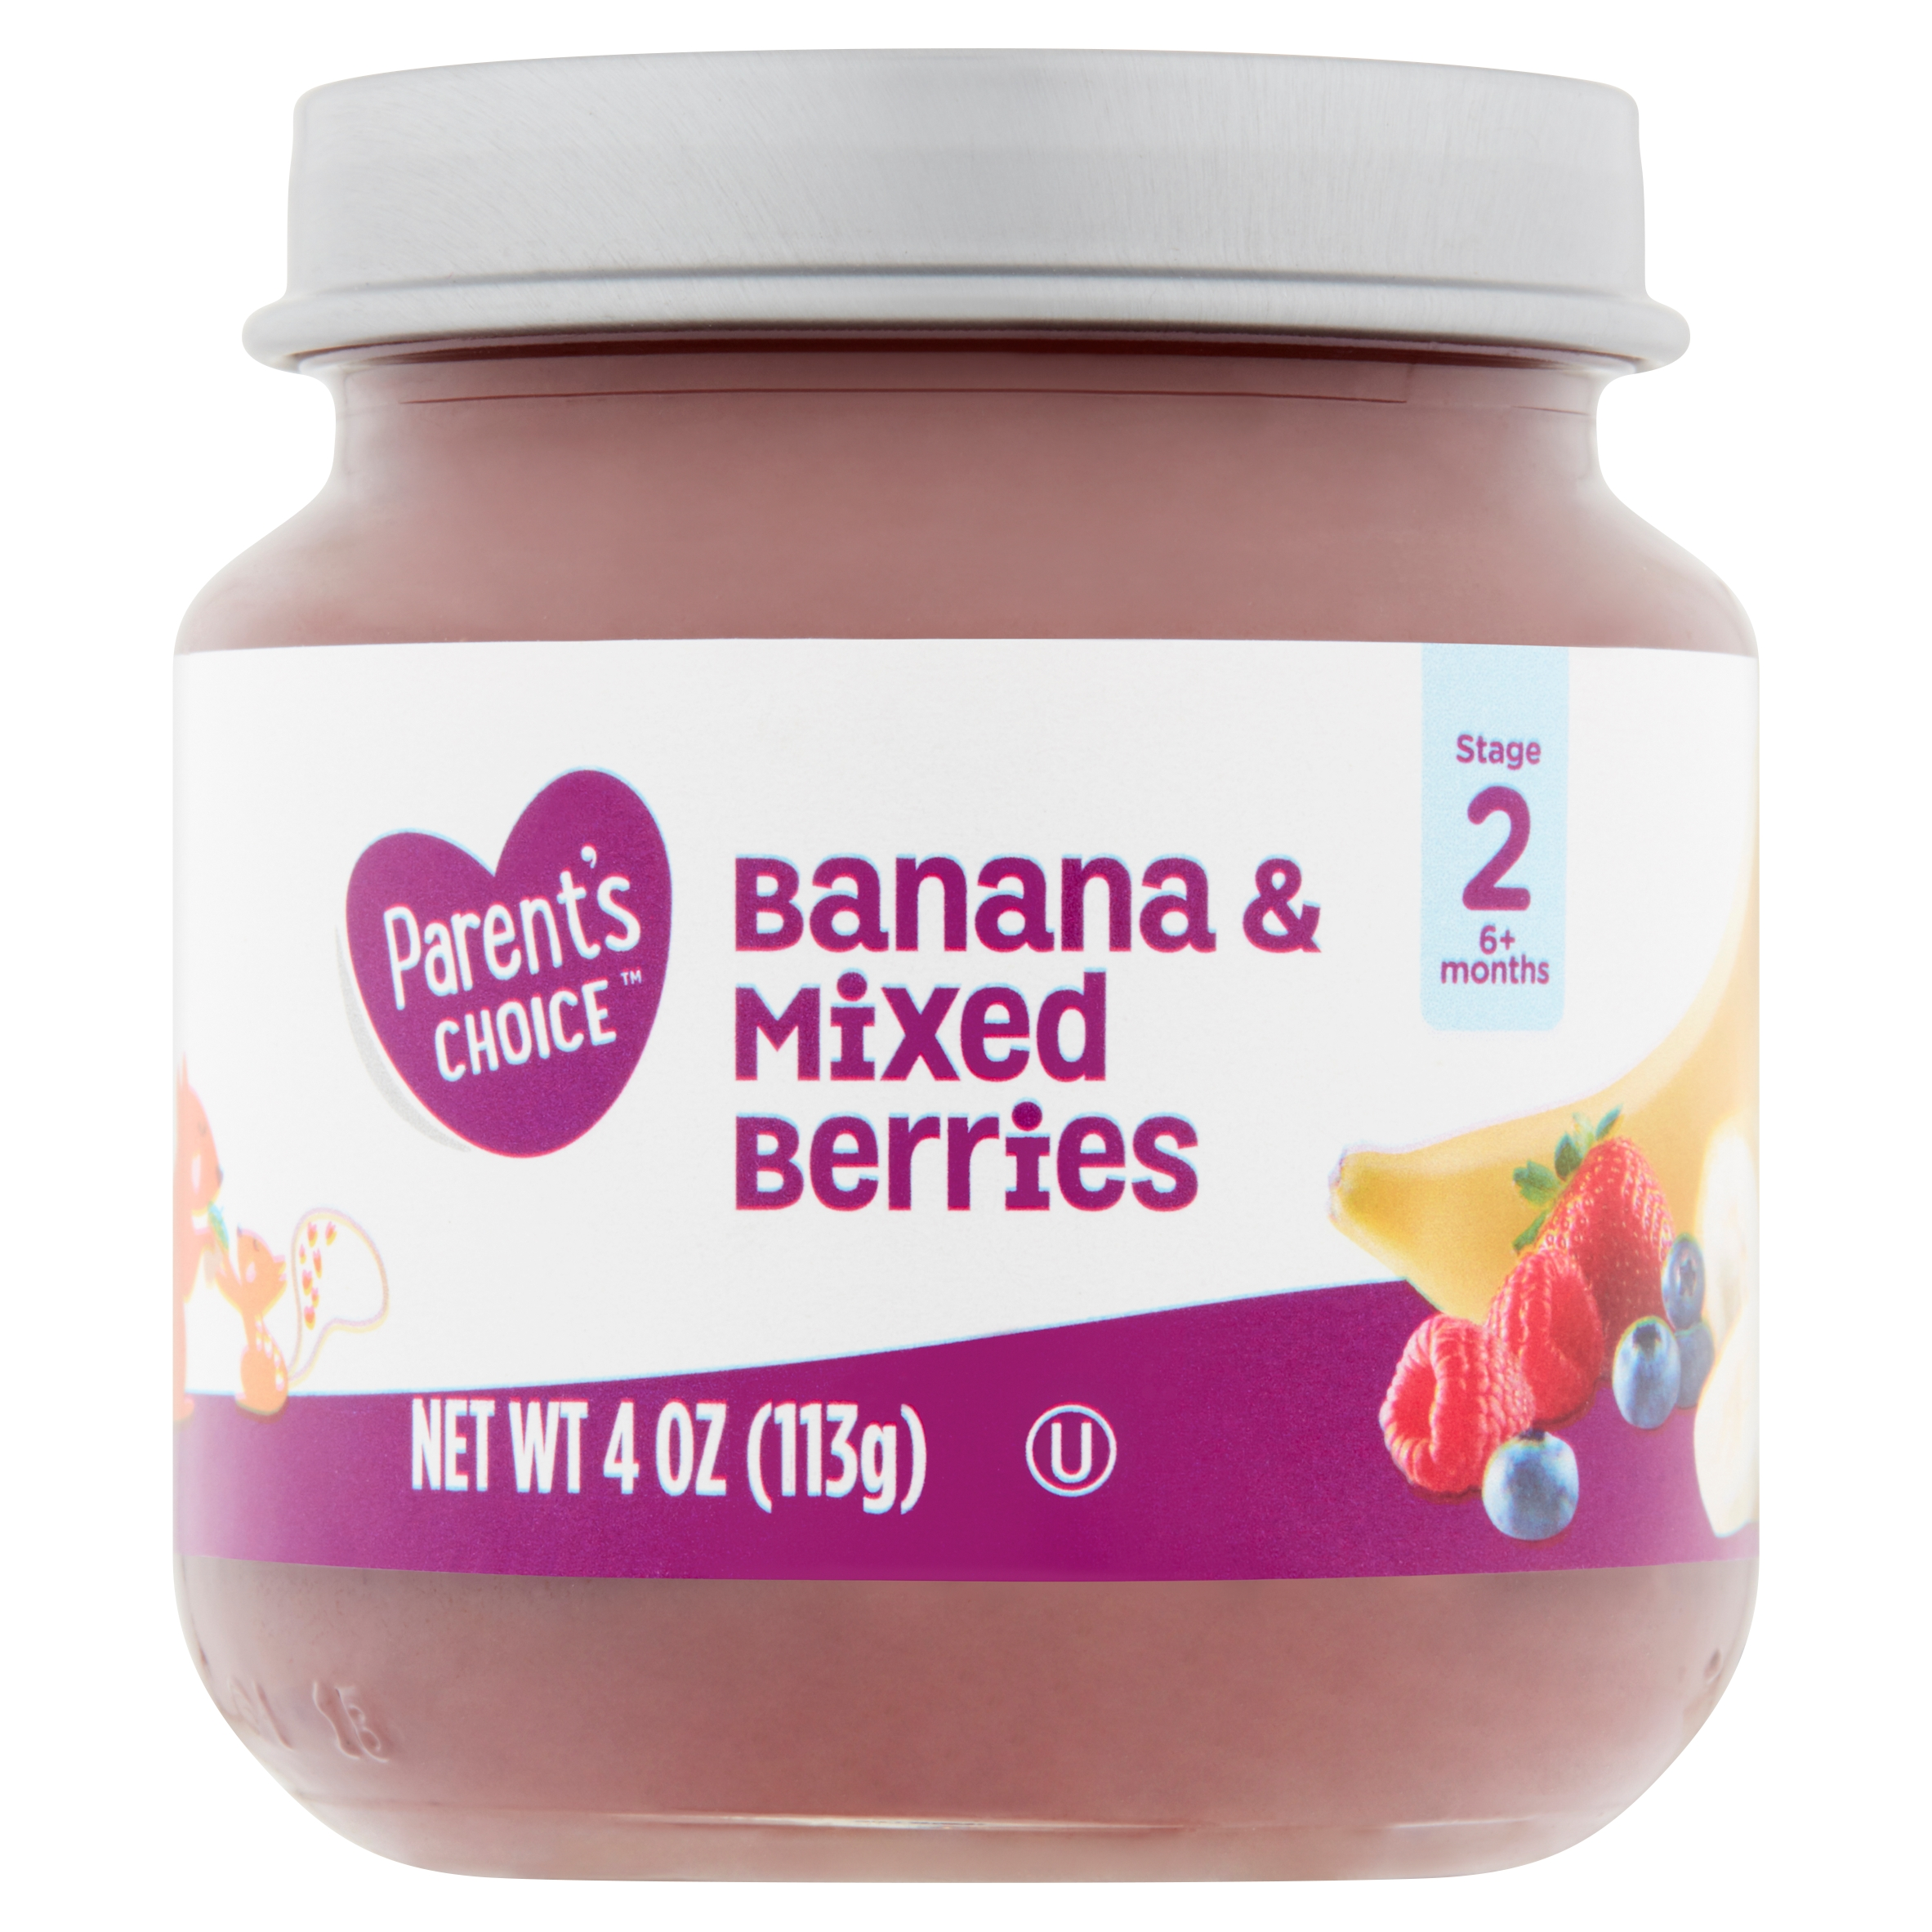 Parent's Choice Baby Food, Banana & Mixed Berries, Stage 2, 4 oz